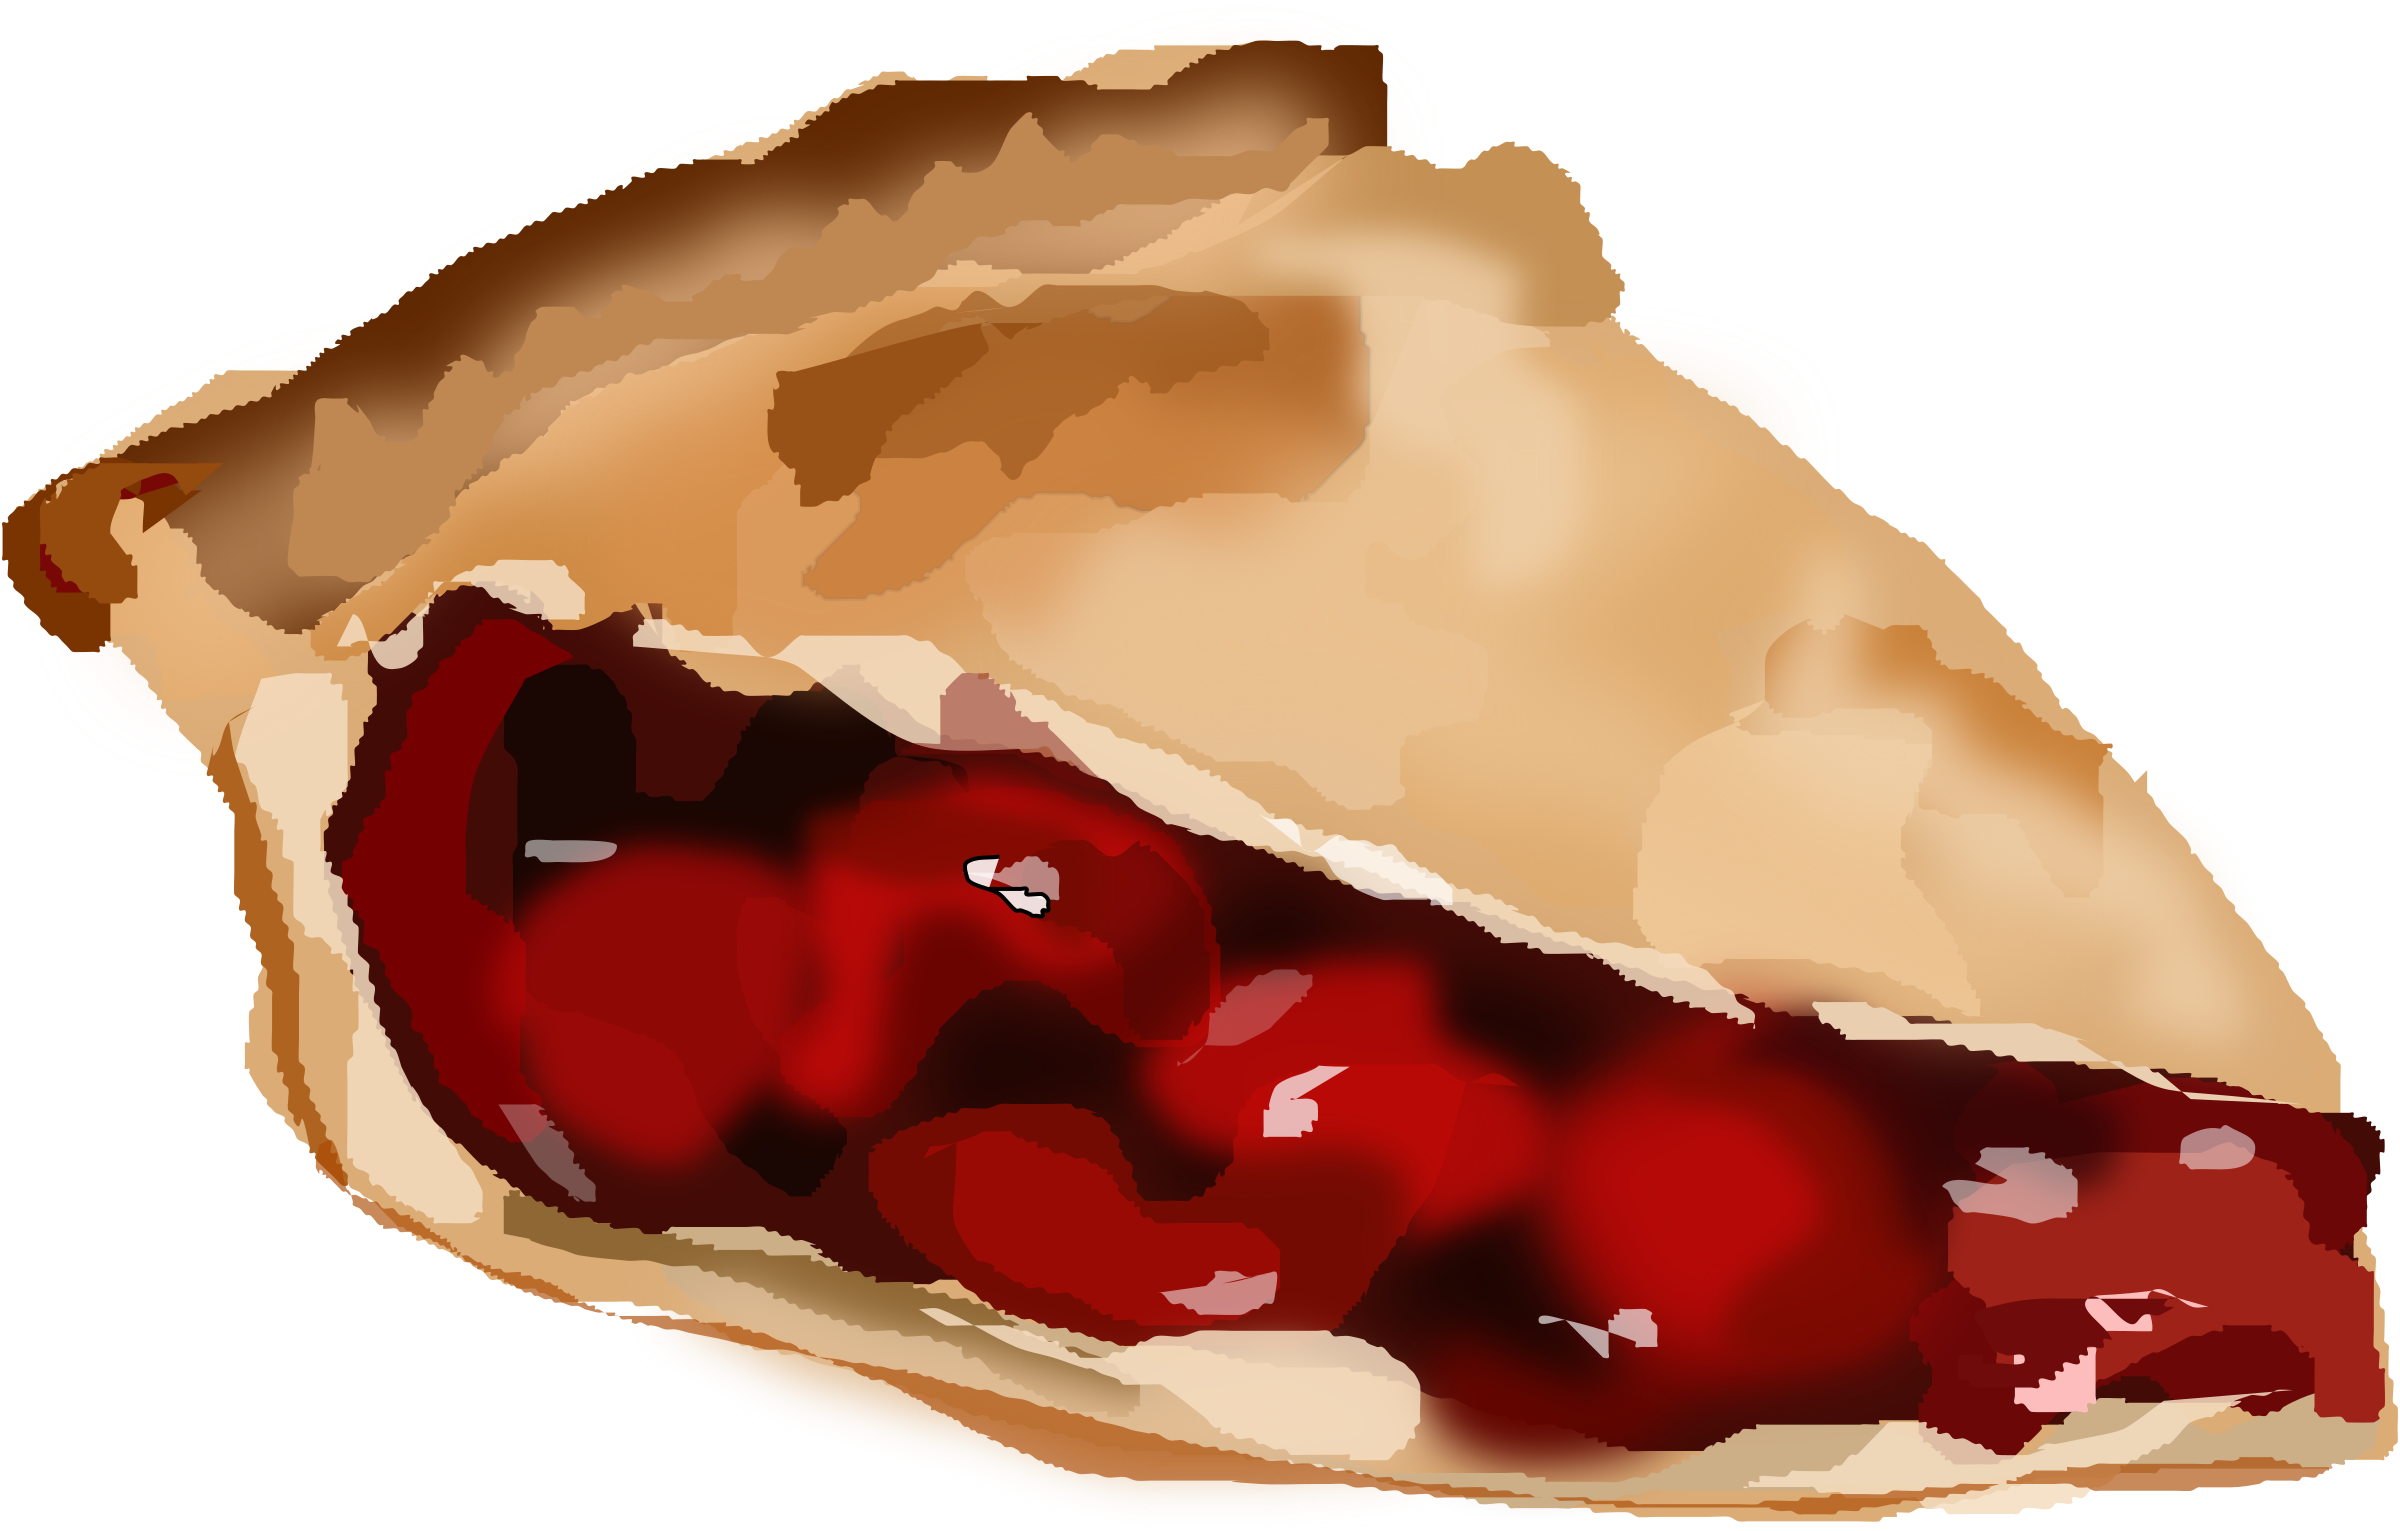 Slice Of Cherry Pie by Degri